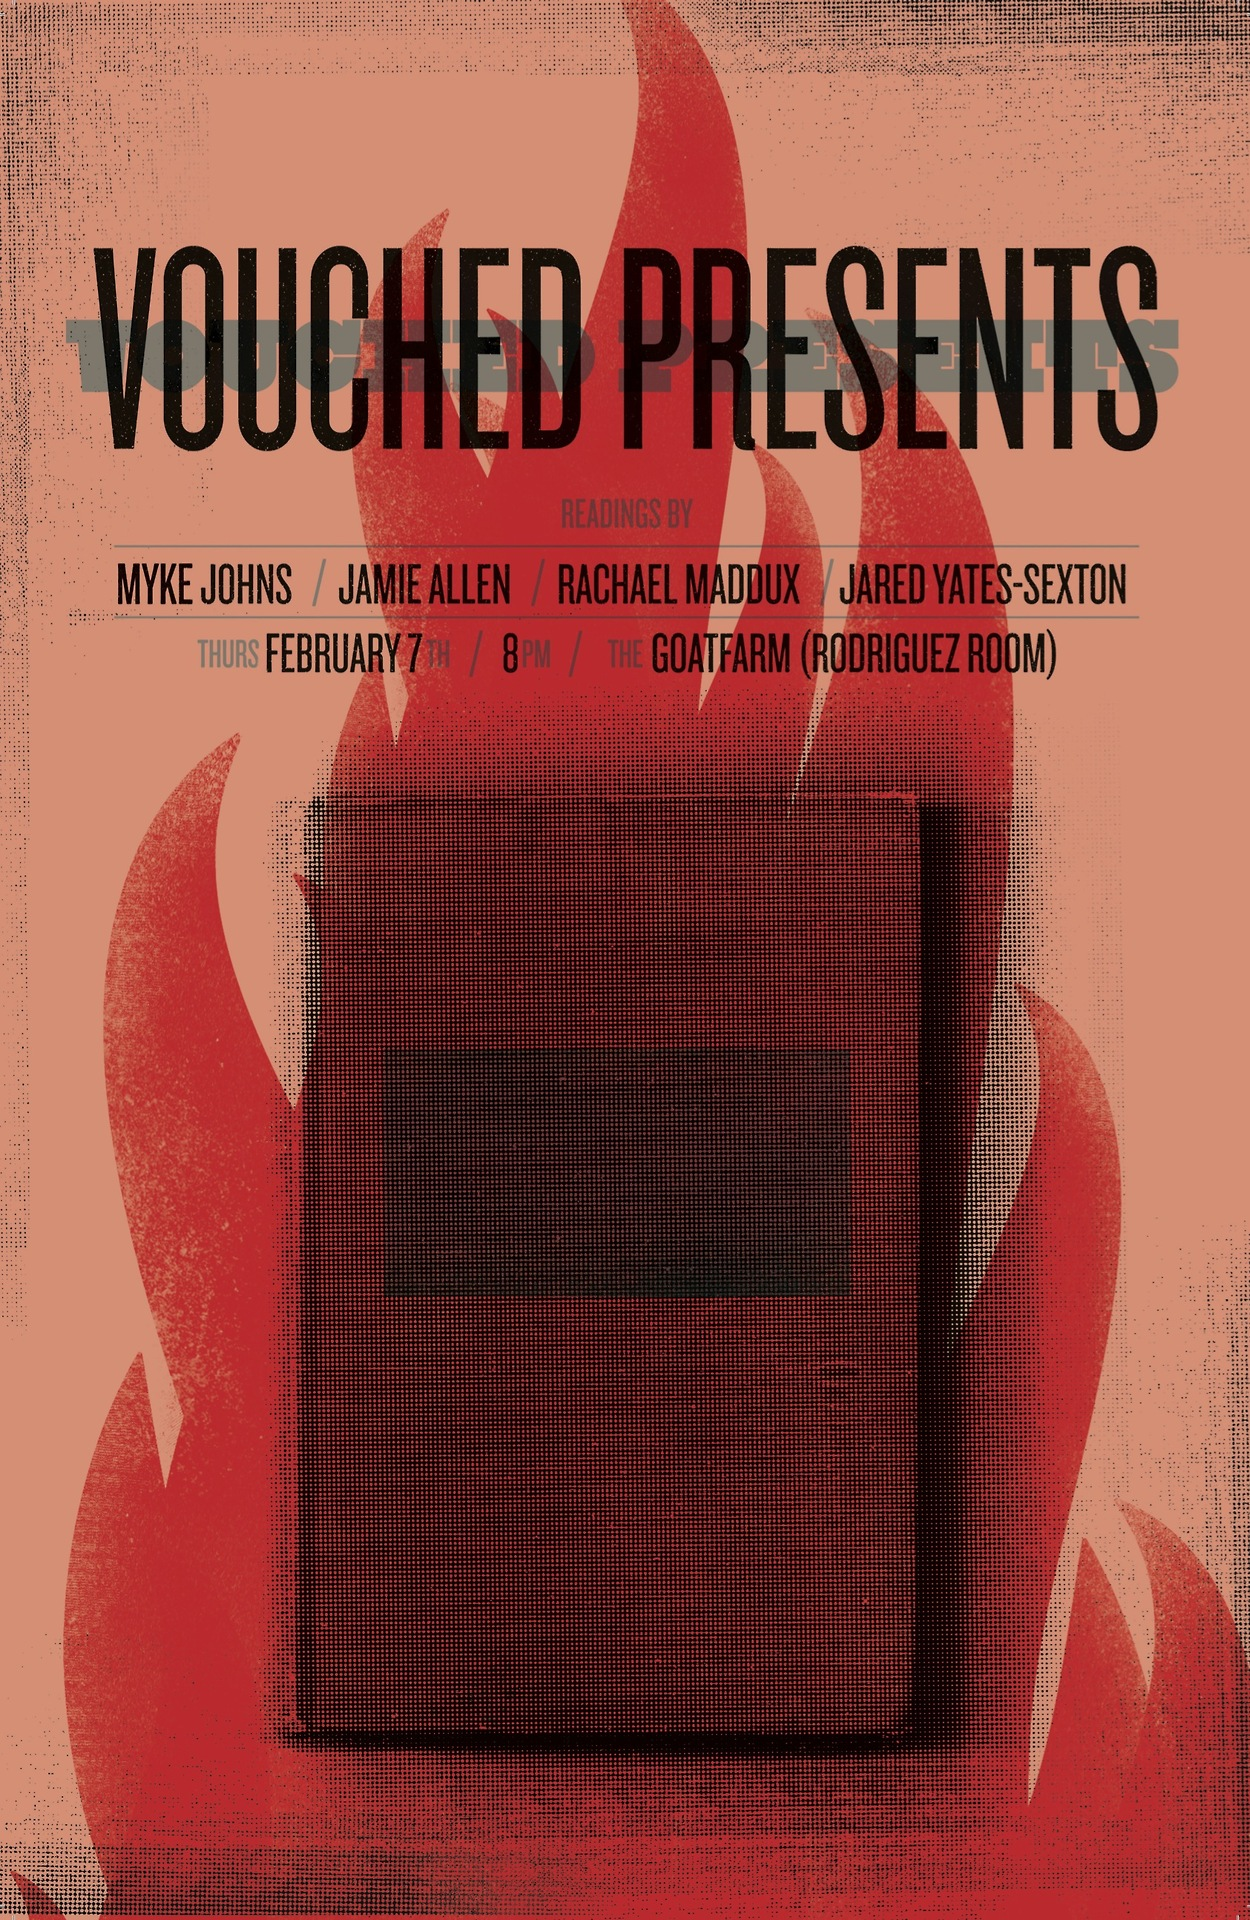 Vouched Presents, 2.7.13